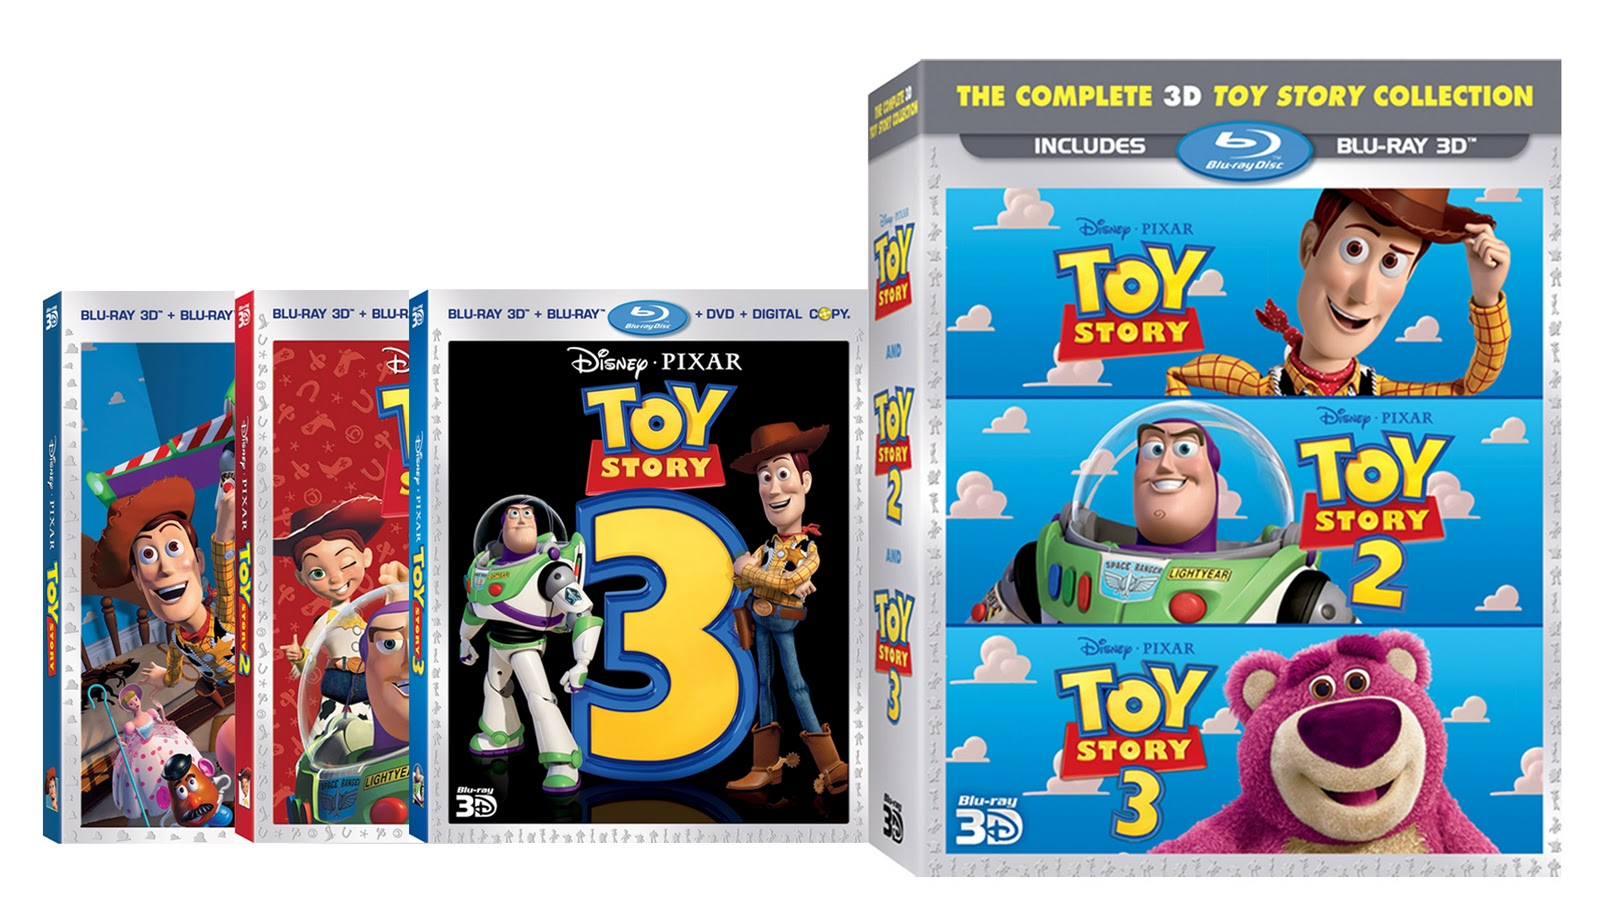 a movie analysis of toy story by disney and pixar Case solution,the walt disney company and pixar inc  the company released its all-time favorite movie film 'toy story 3  swot analysis of disney acquiring pixar.